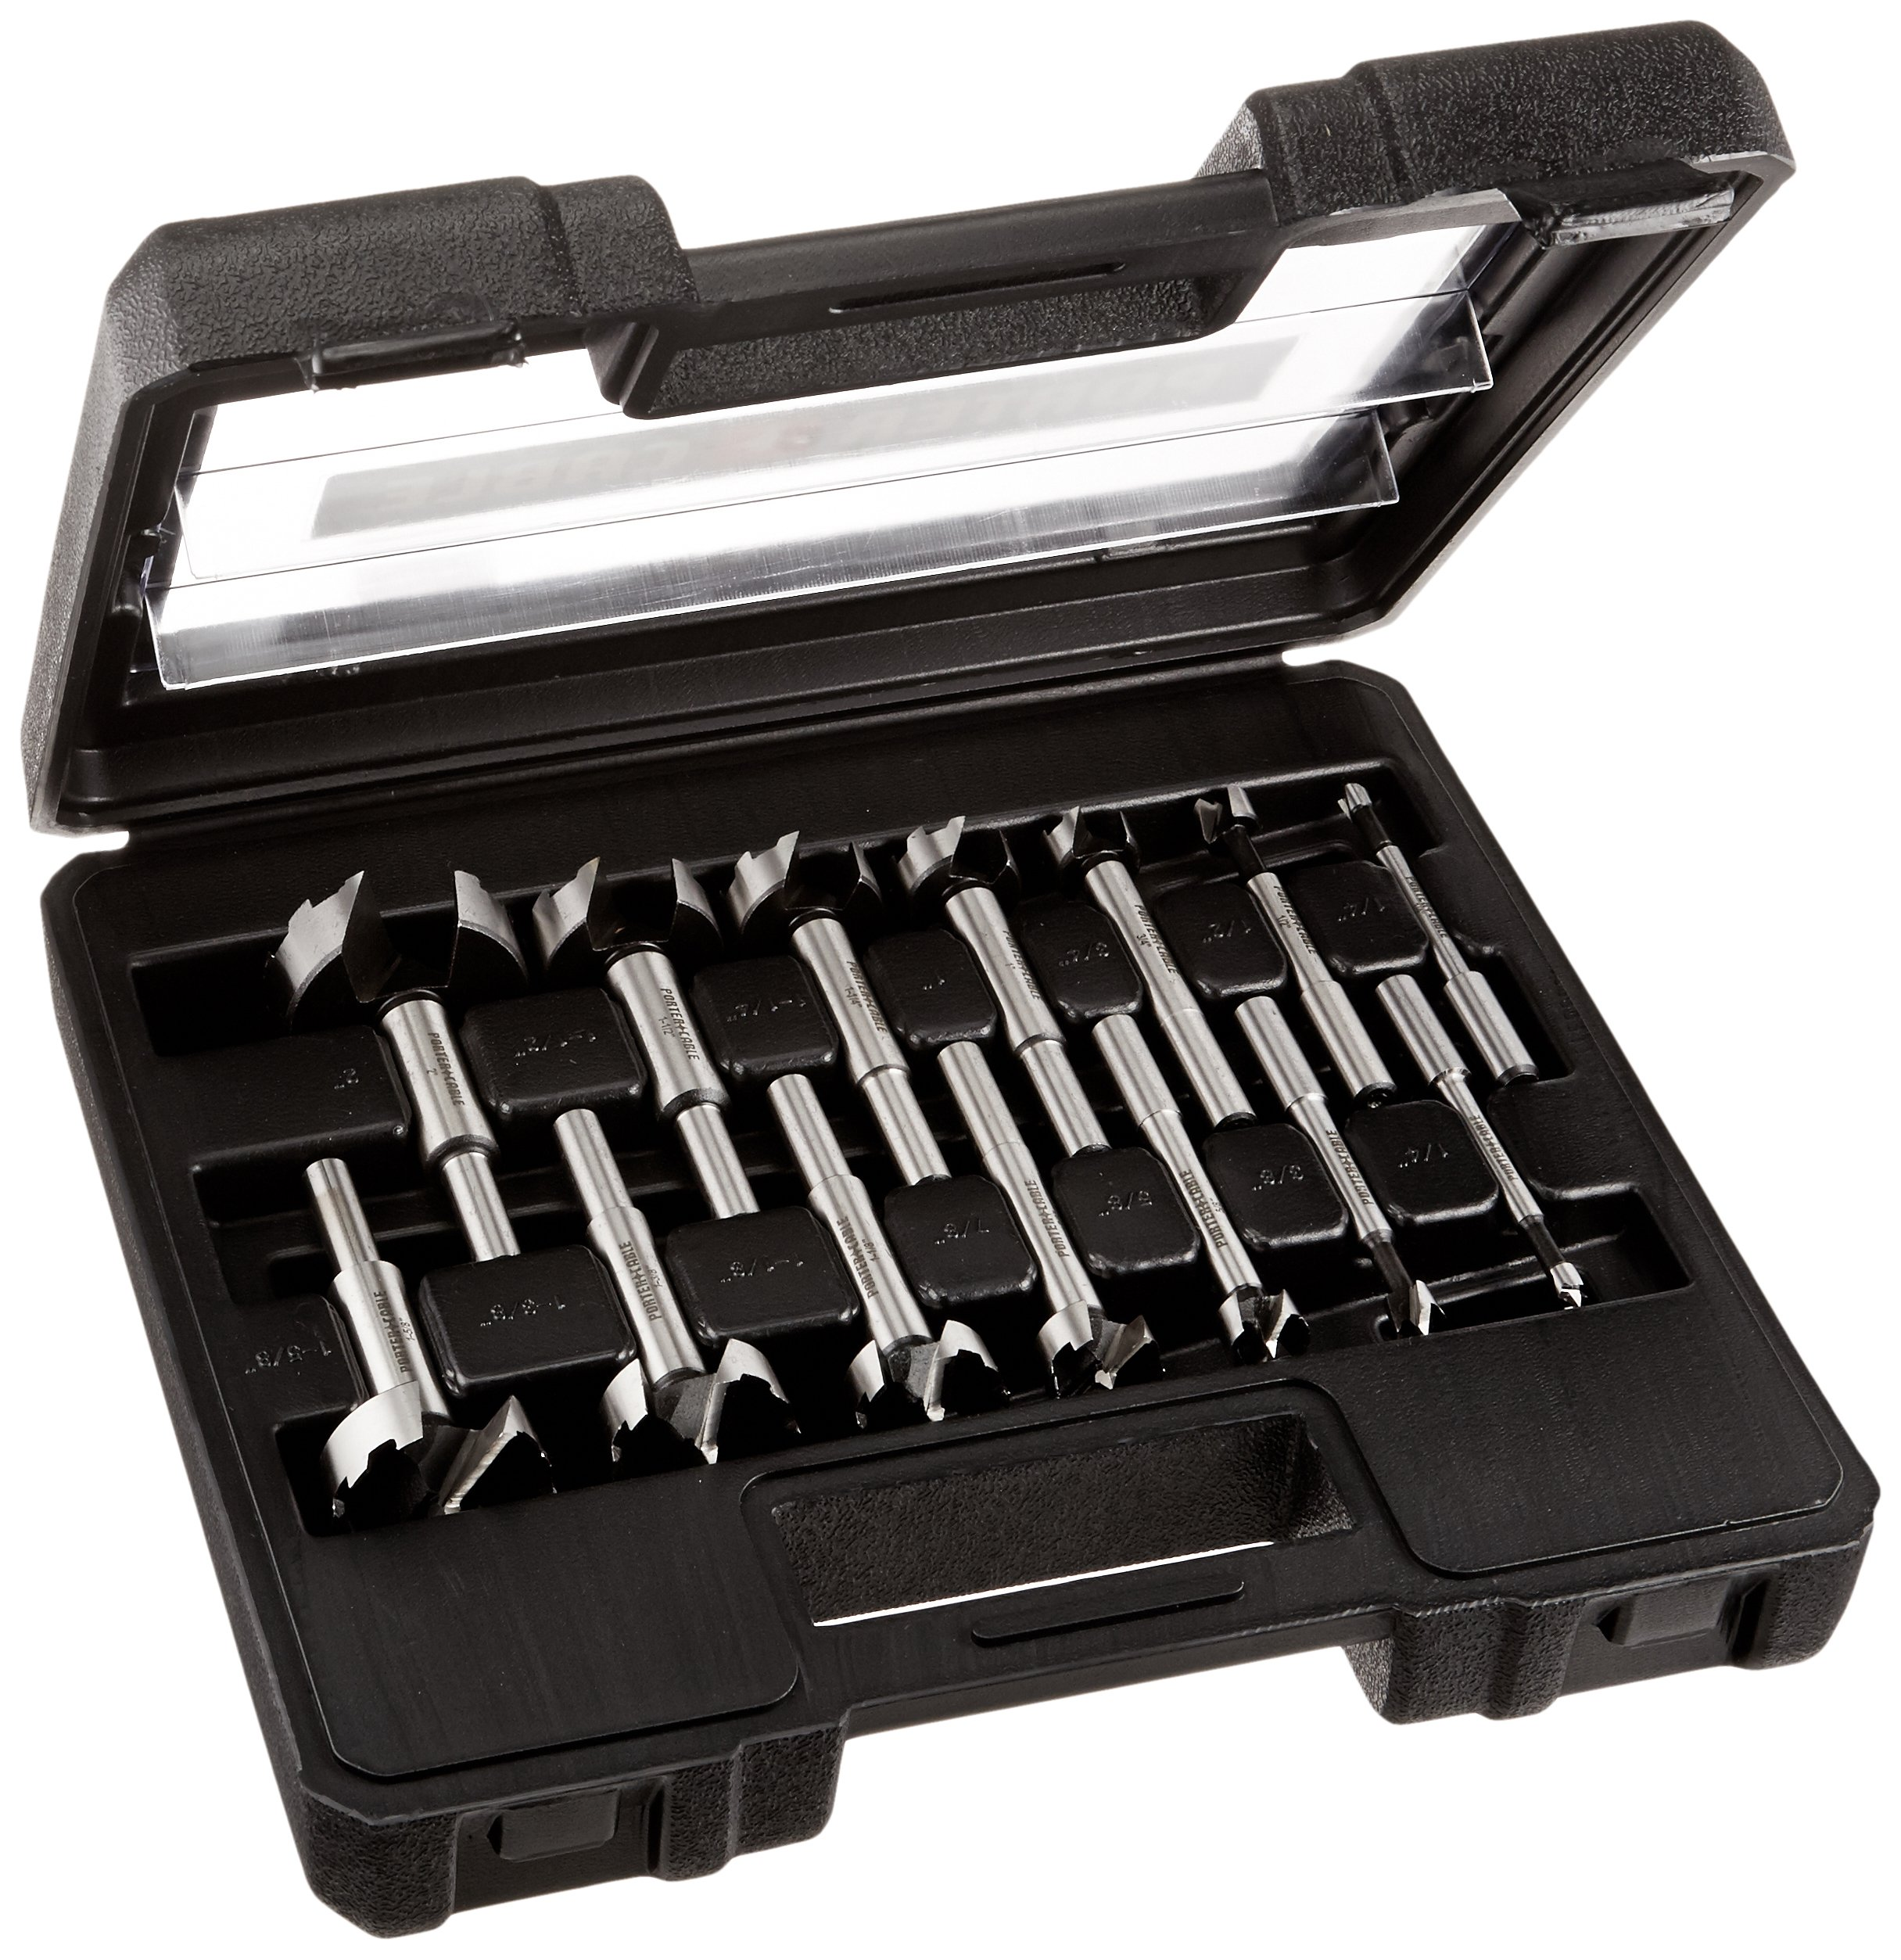 PORTER-CABLE Forstner Bit Set, 14-Piece (PC1014) by PORTER-CABLE